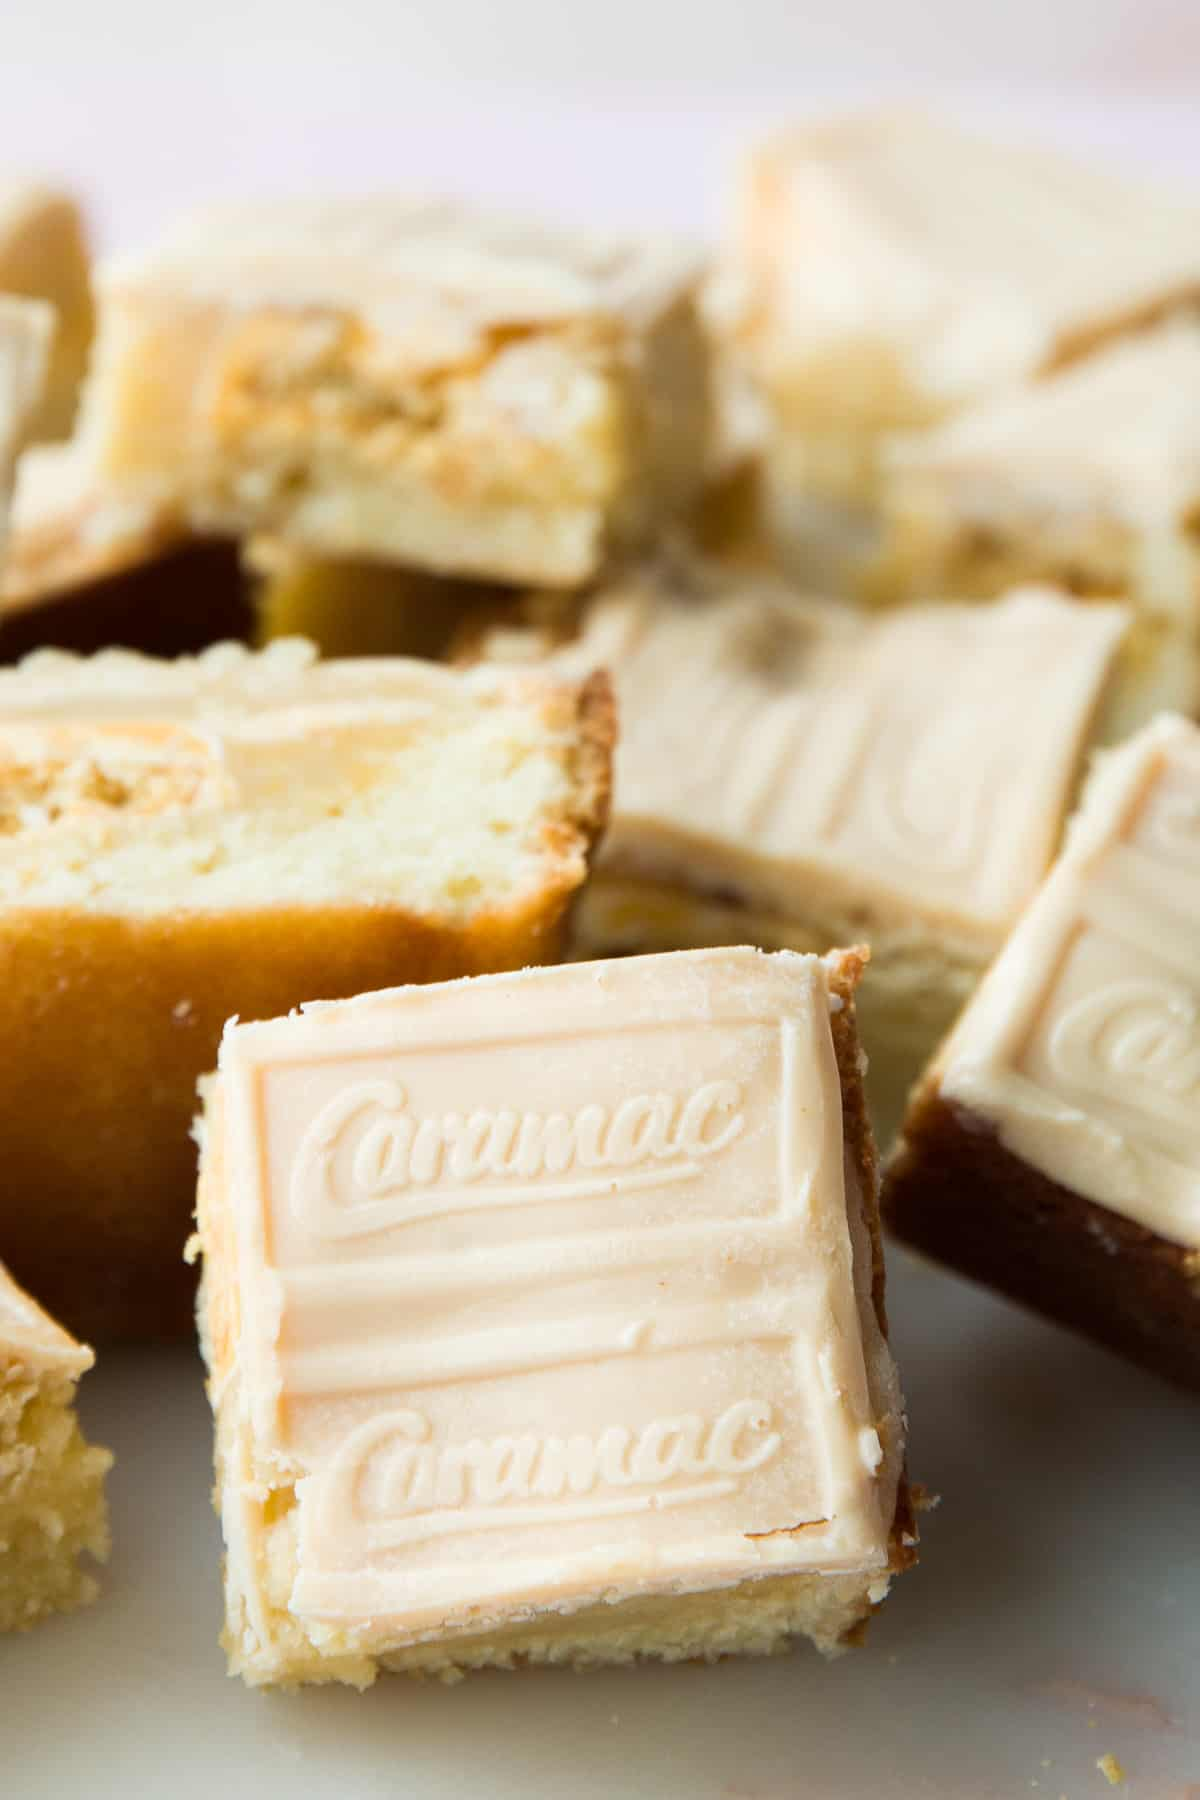 A white chocolate blondie with caramac for topping.